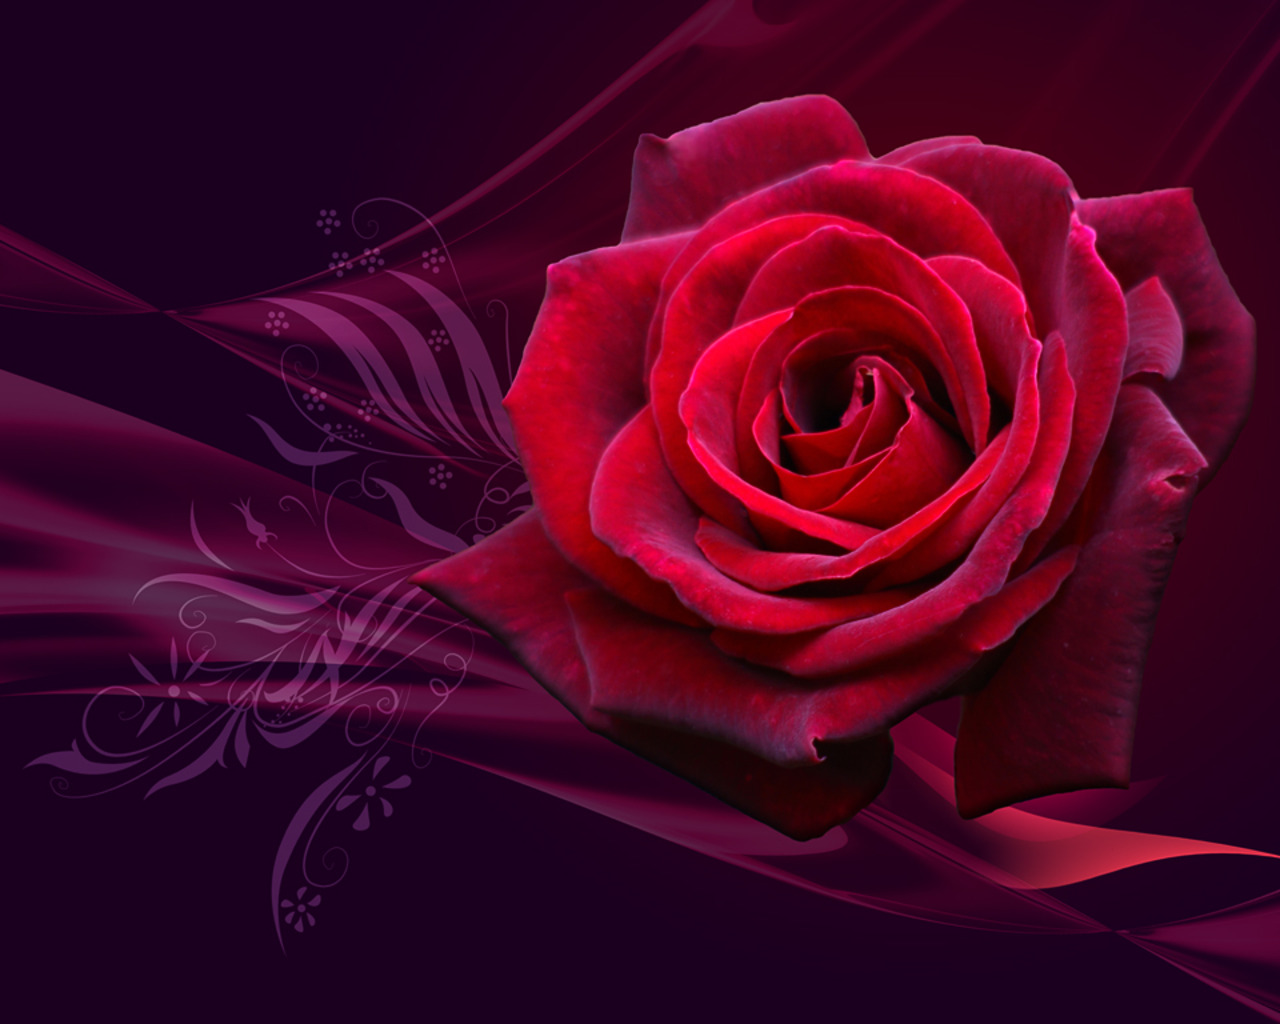 Cool wallpapers valentines day roses